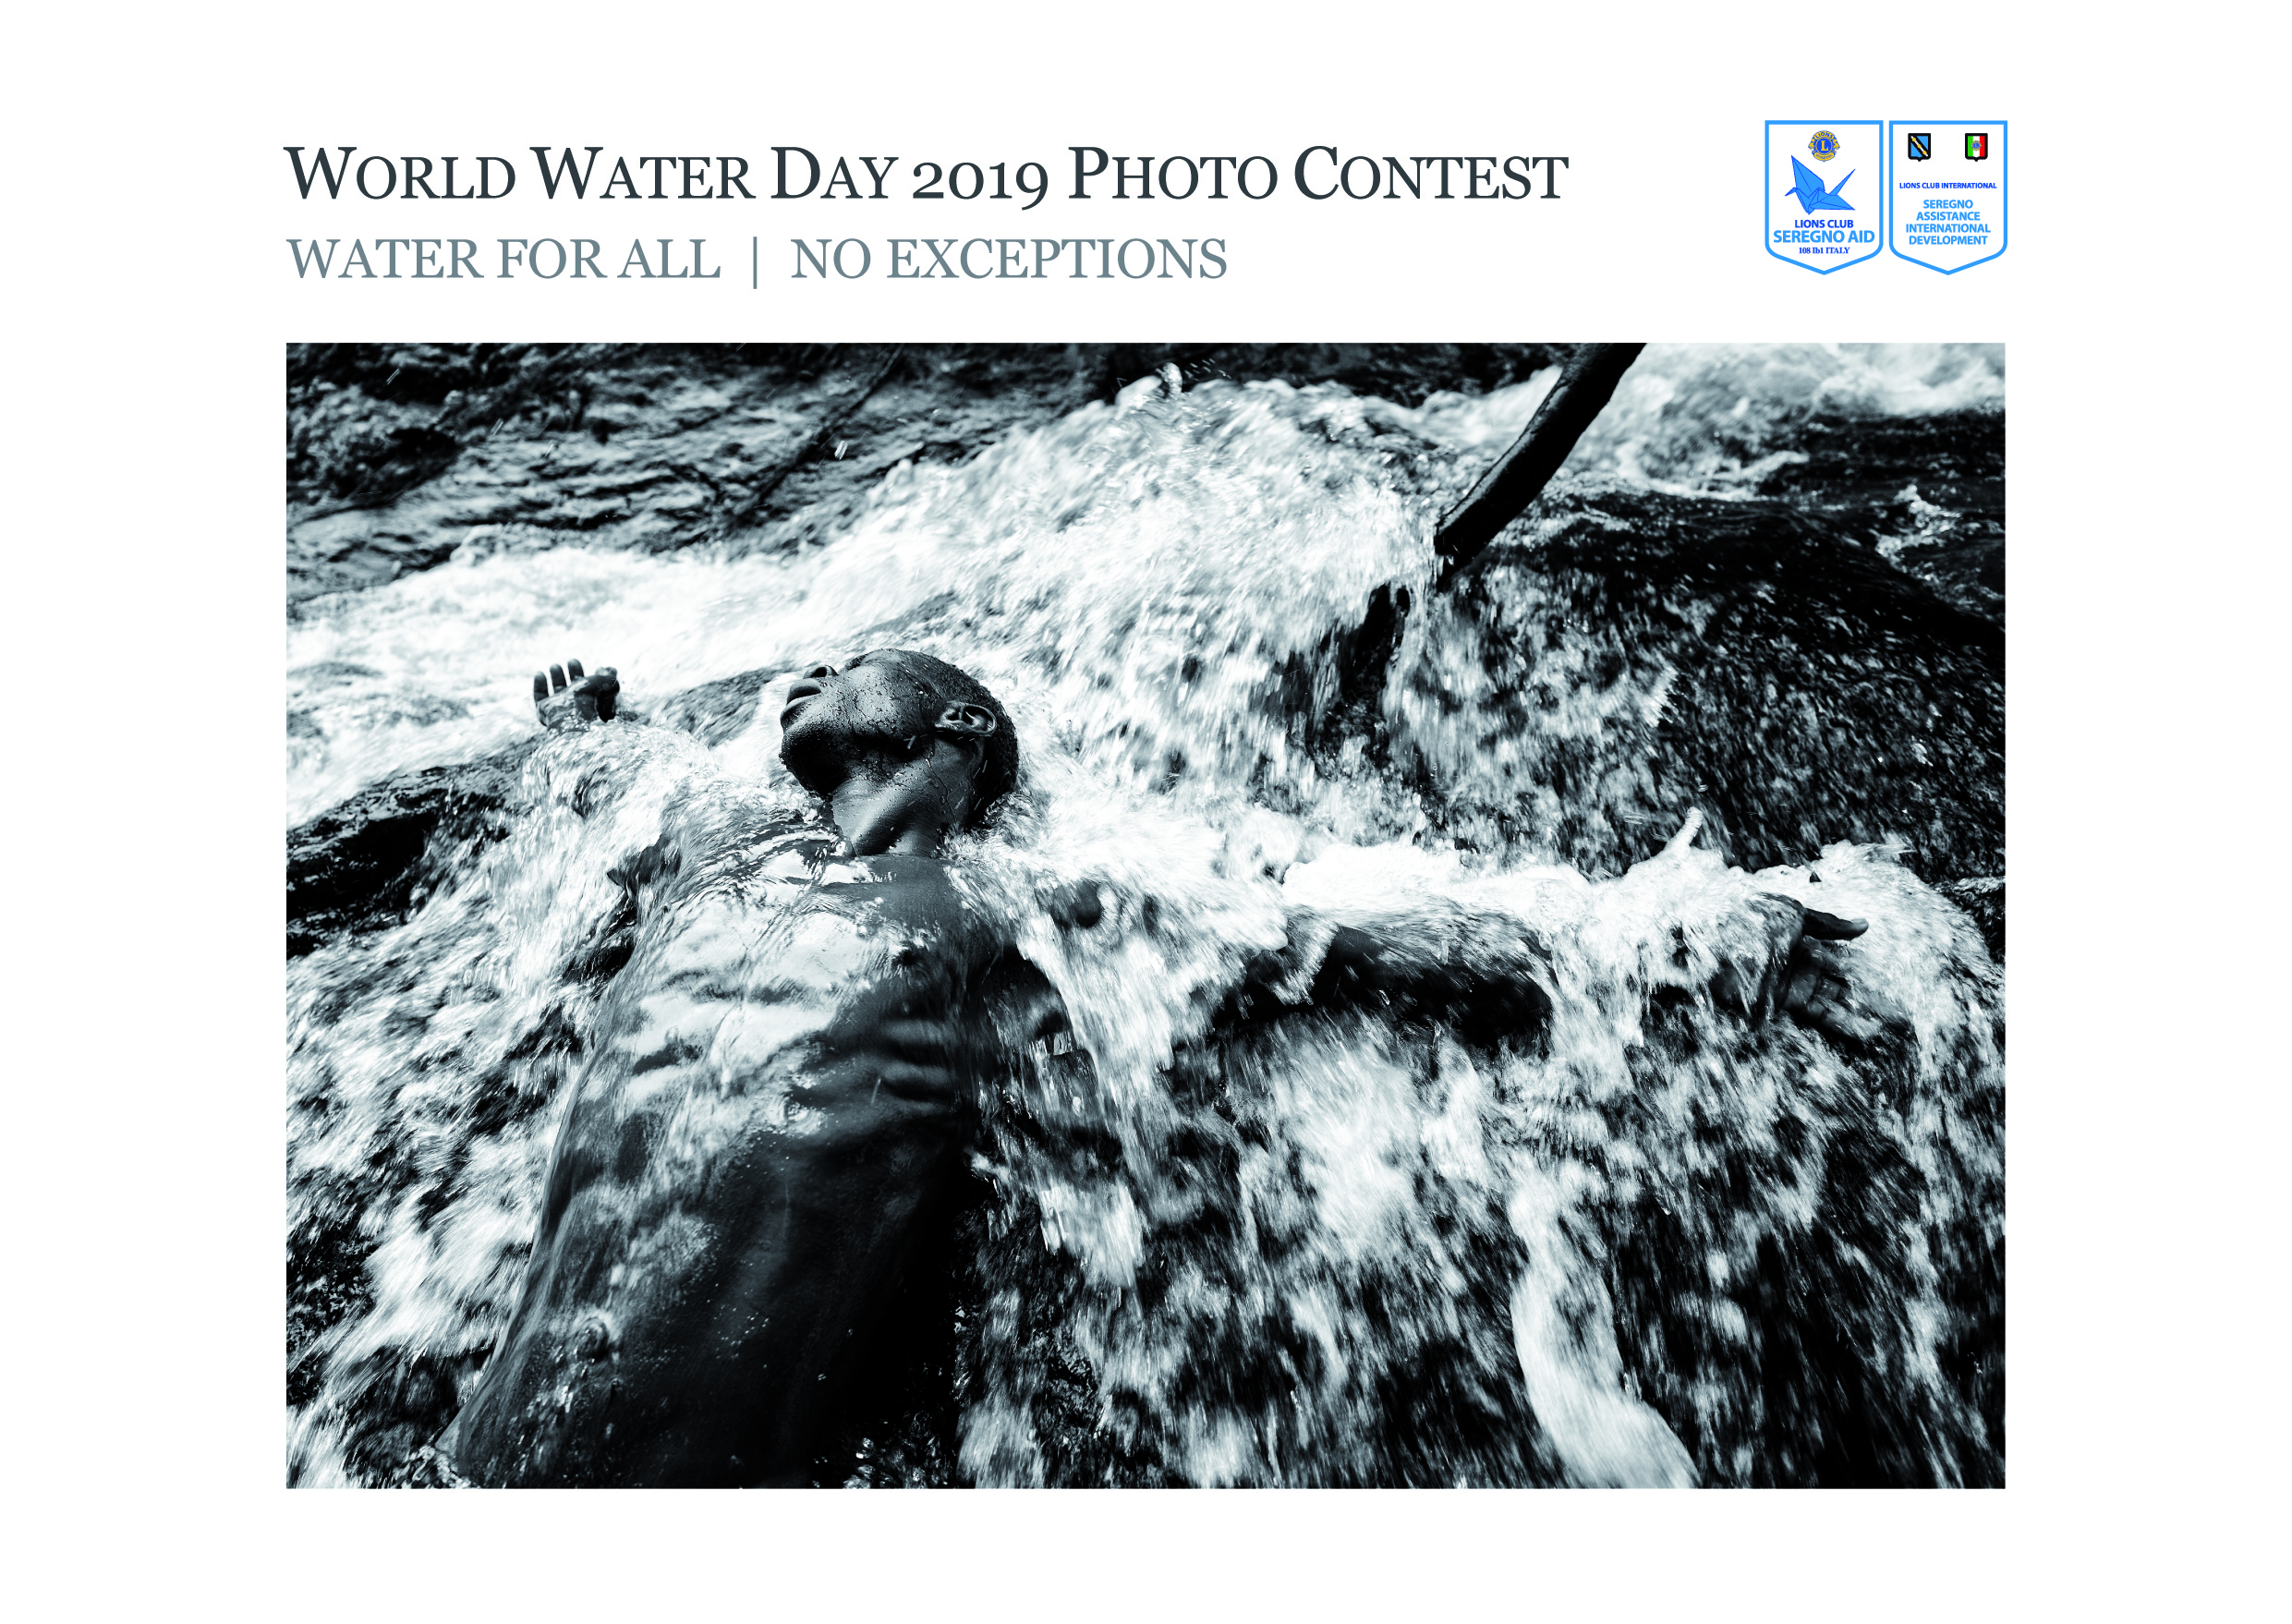 World Water Day Photo Contest 2019 - logo